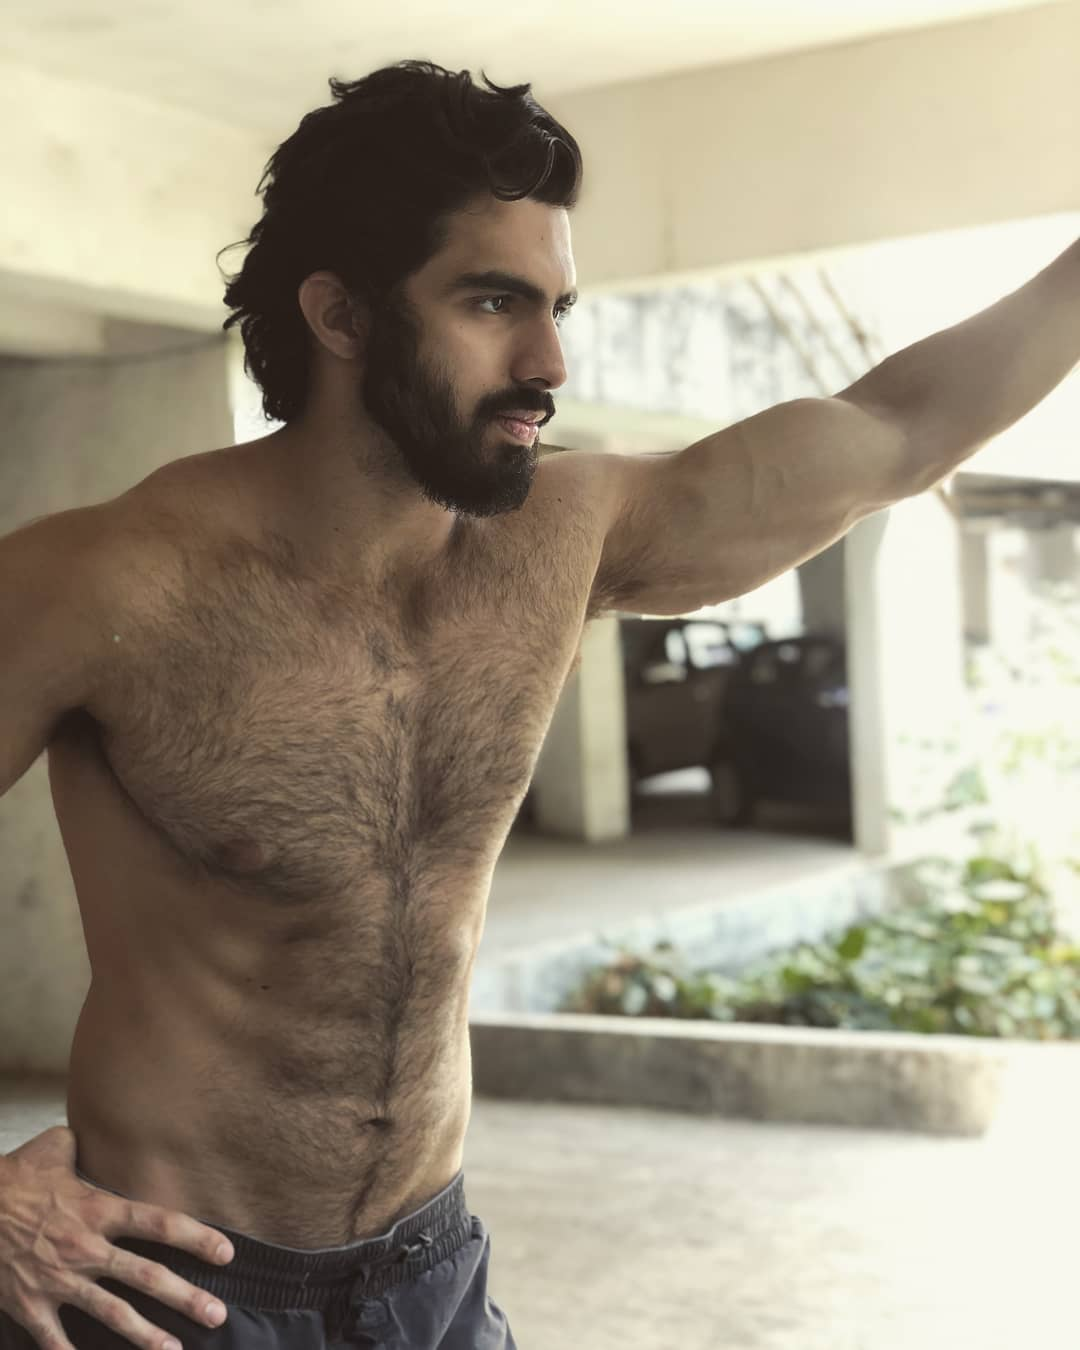 The Hot Indian Male Model Karran Kharas Proved That Hairy